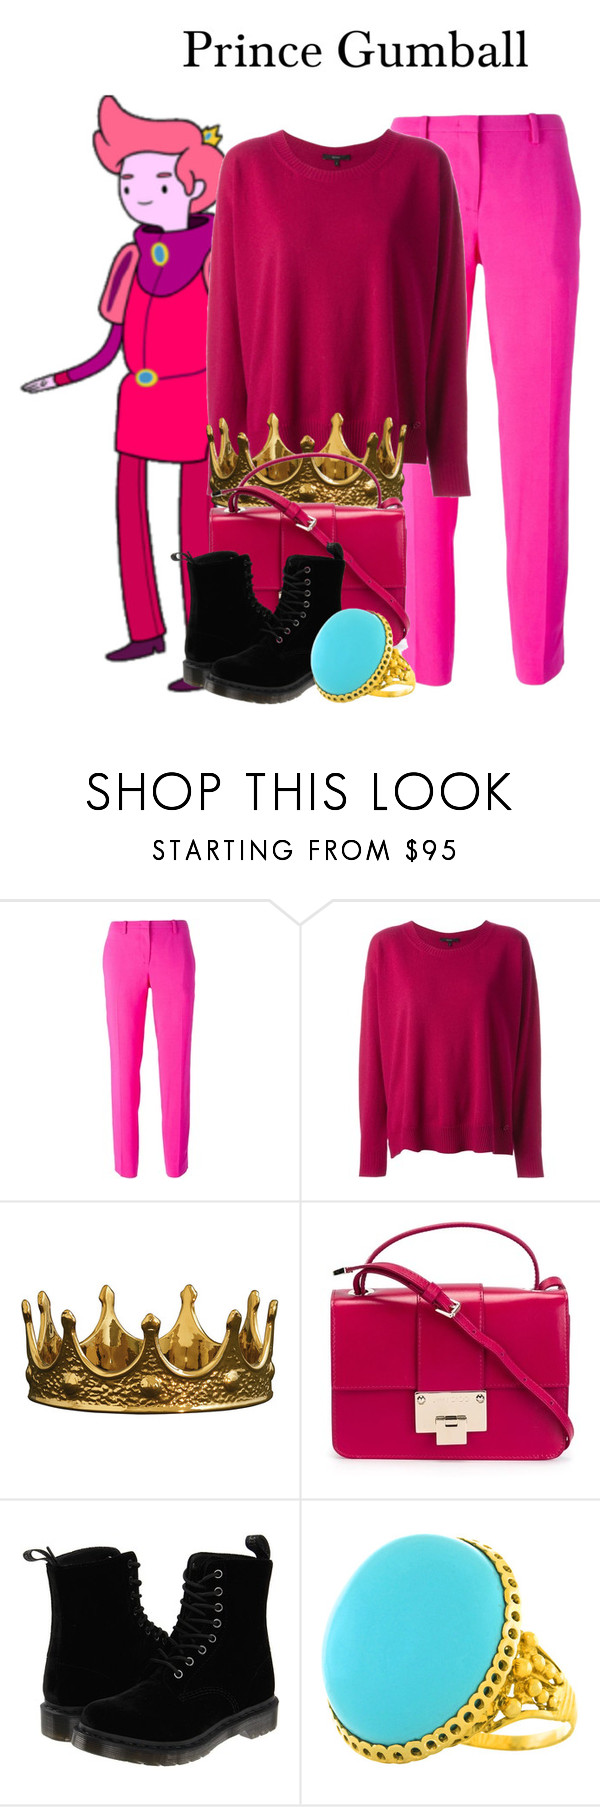 """PrinceGumball/AdventureTime/1-6-16"" by megan-vanwinkle ❤ liked on Polyvore featuring N°21, Gucci, Seletti, Jimmy Choo and Dr. Martens"